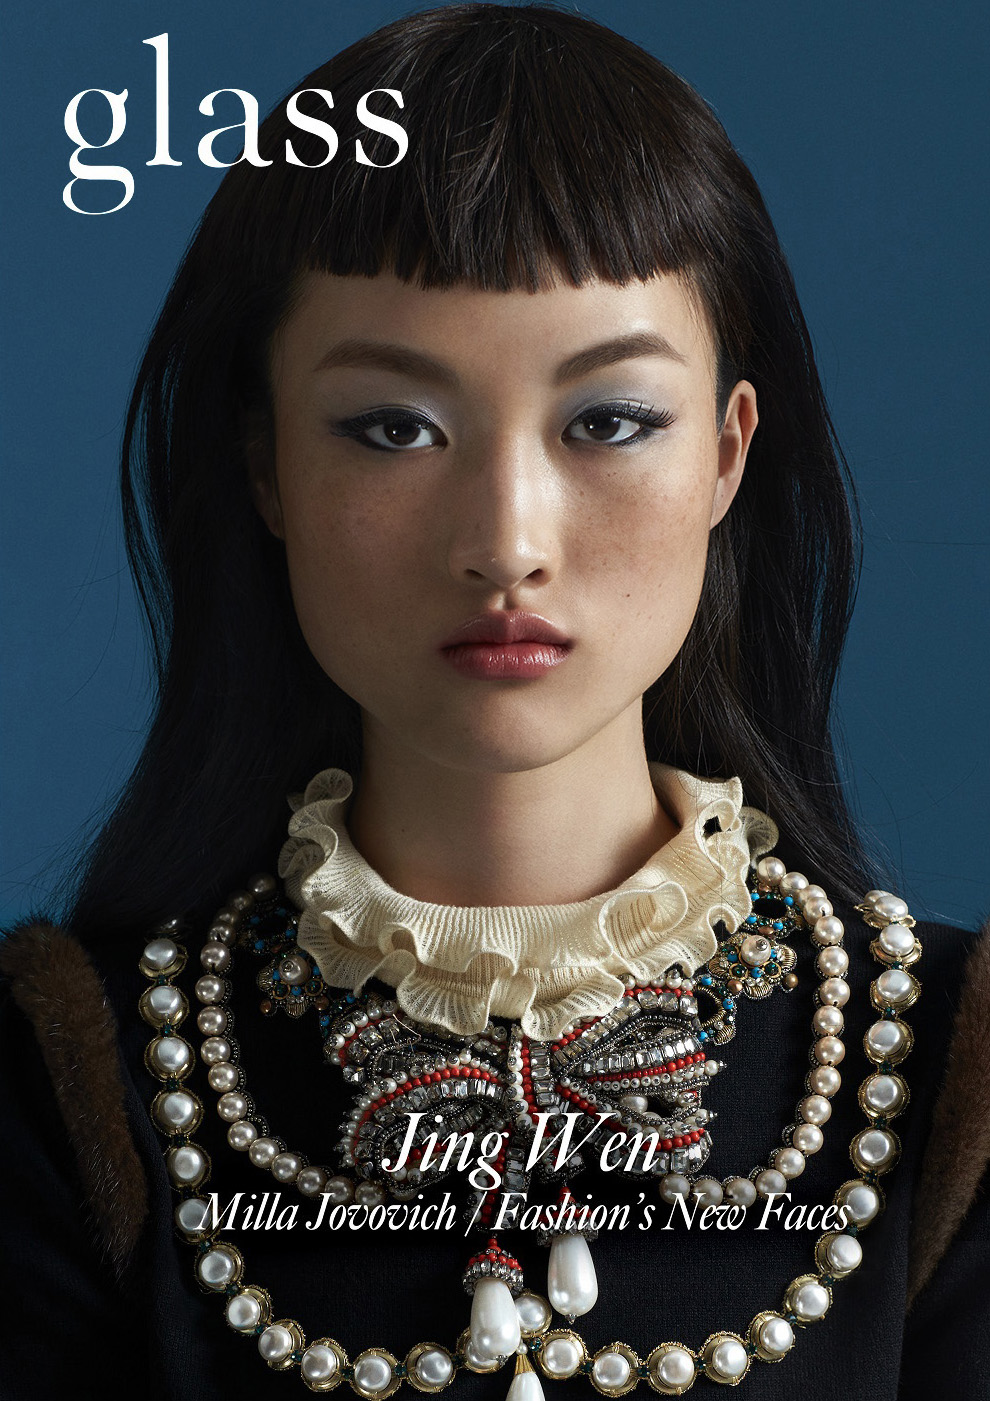 GUCCI / GLASS / JING WEN